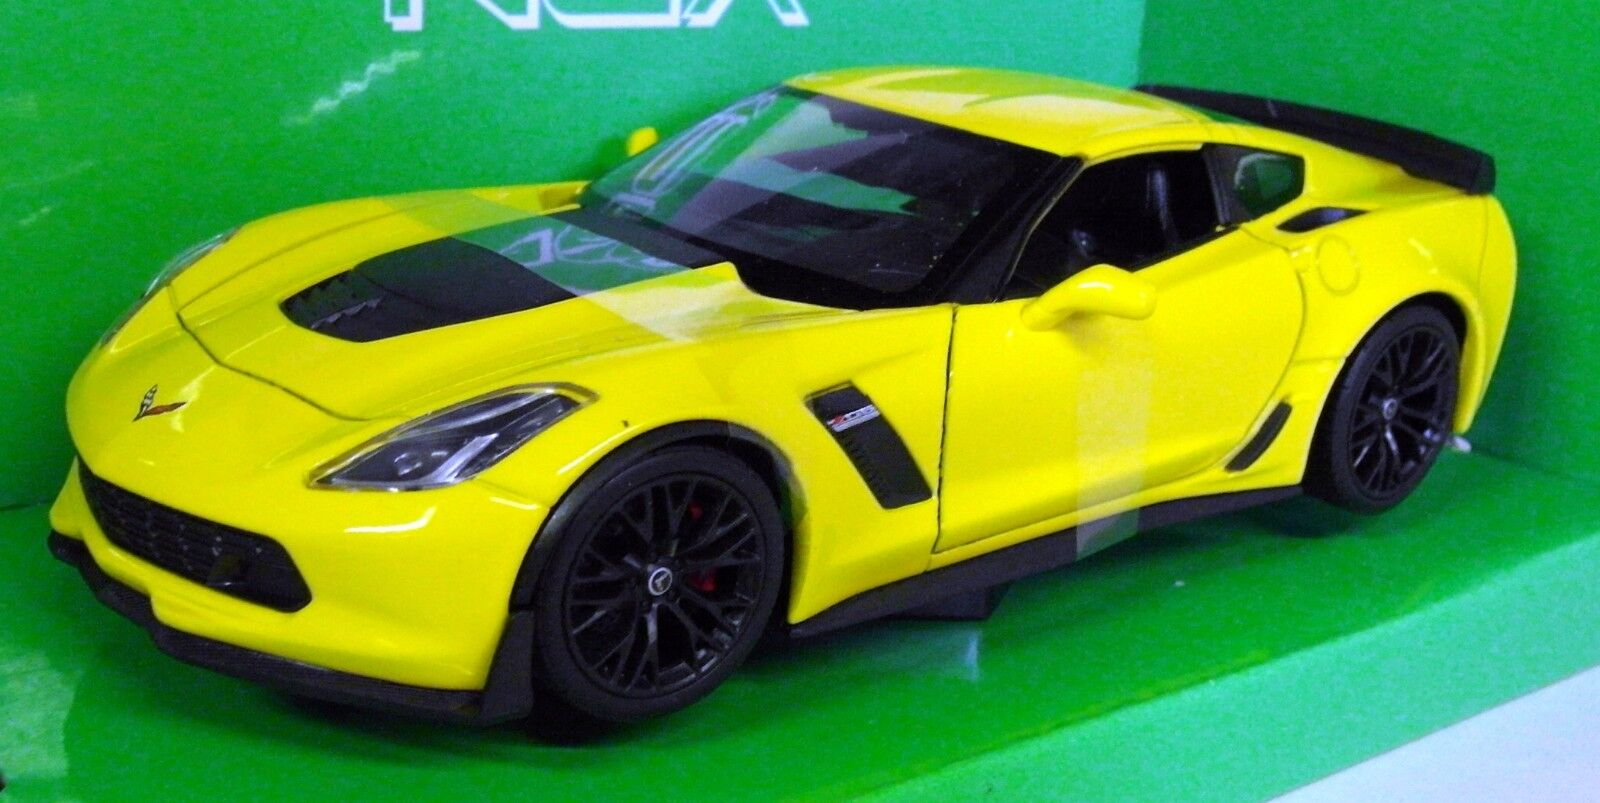 Nex models 1 24 27 27 27 Scale 2017 Chevrolet Corvette Z06 Yellow Diecast model car e927fe